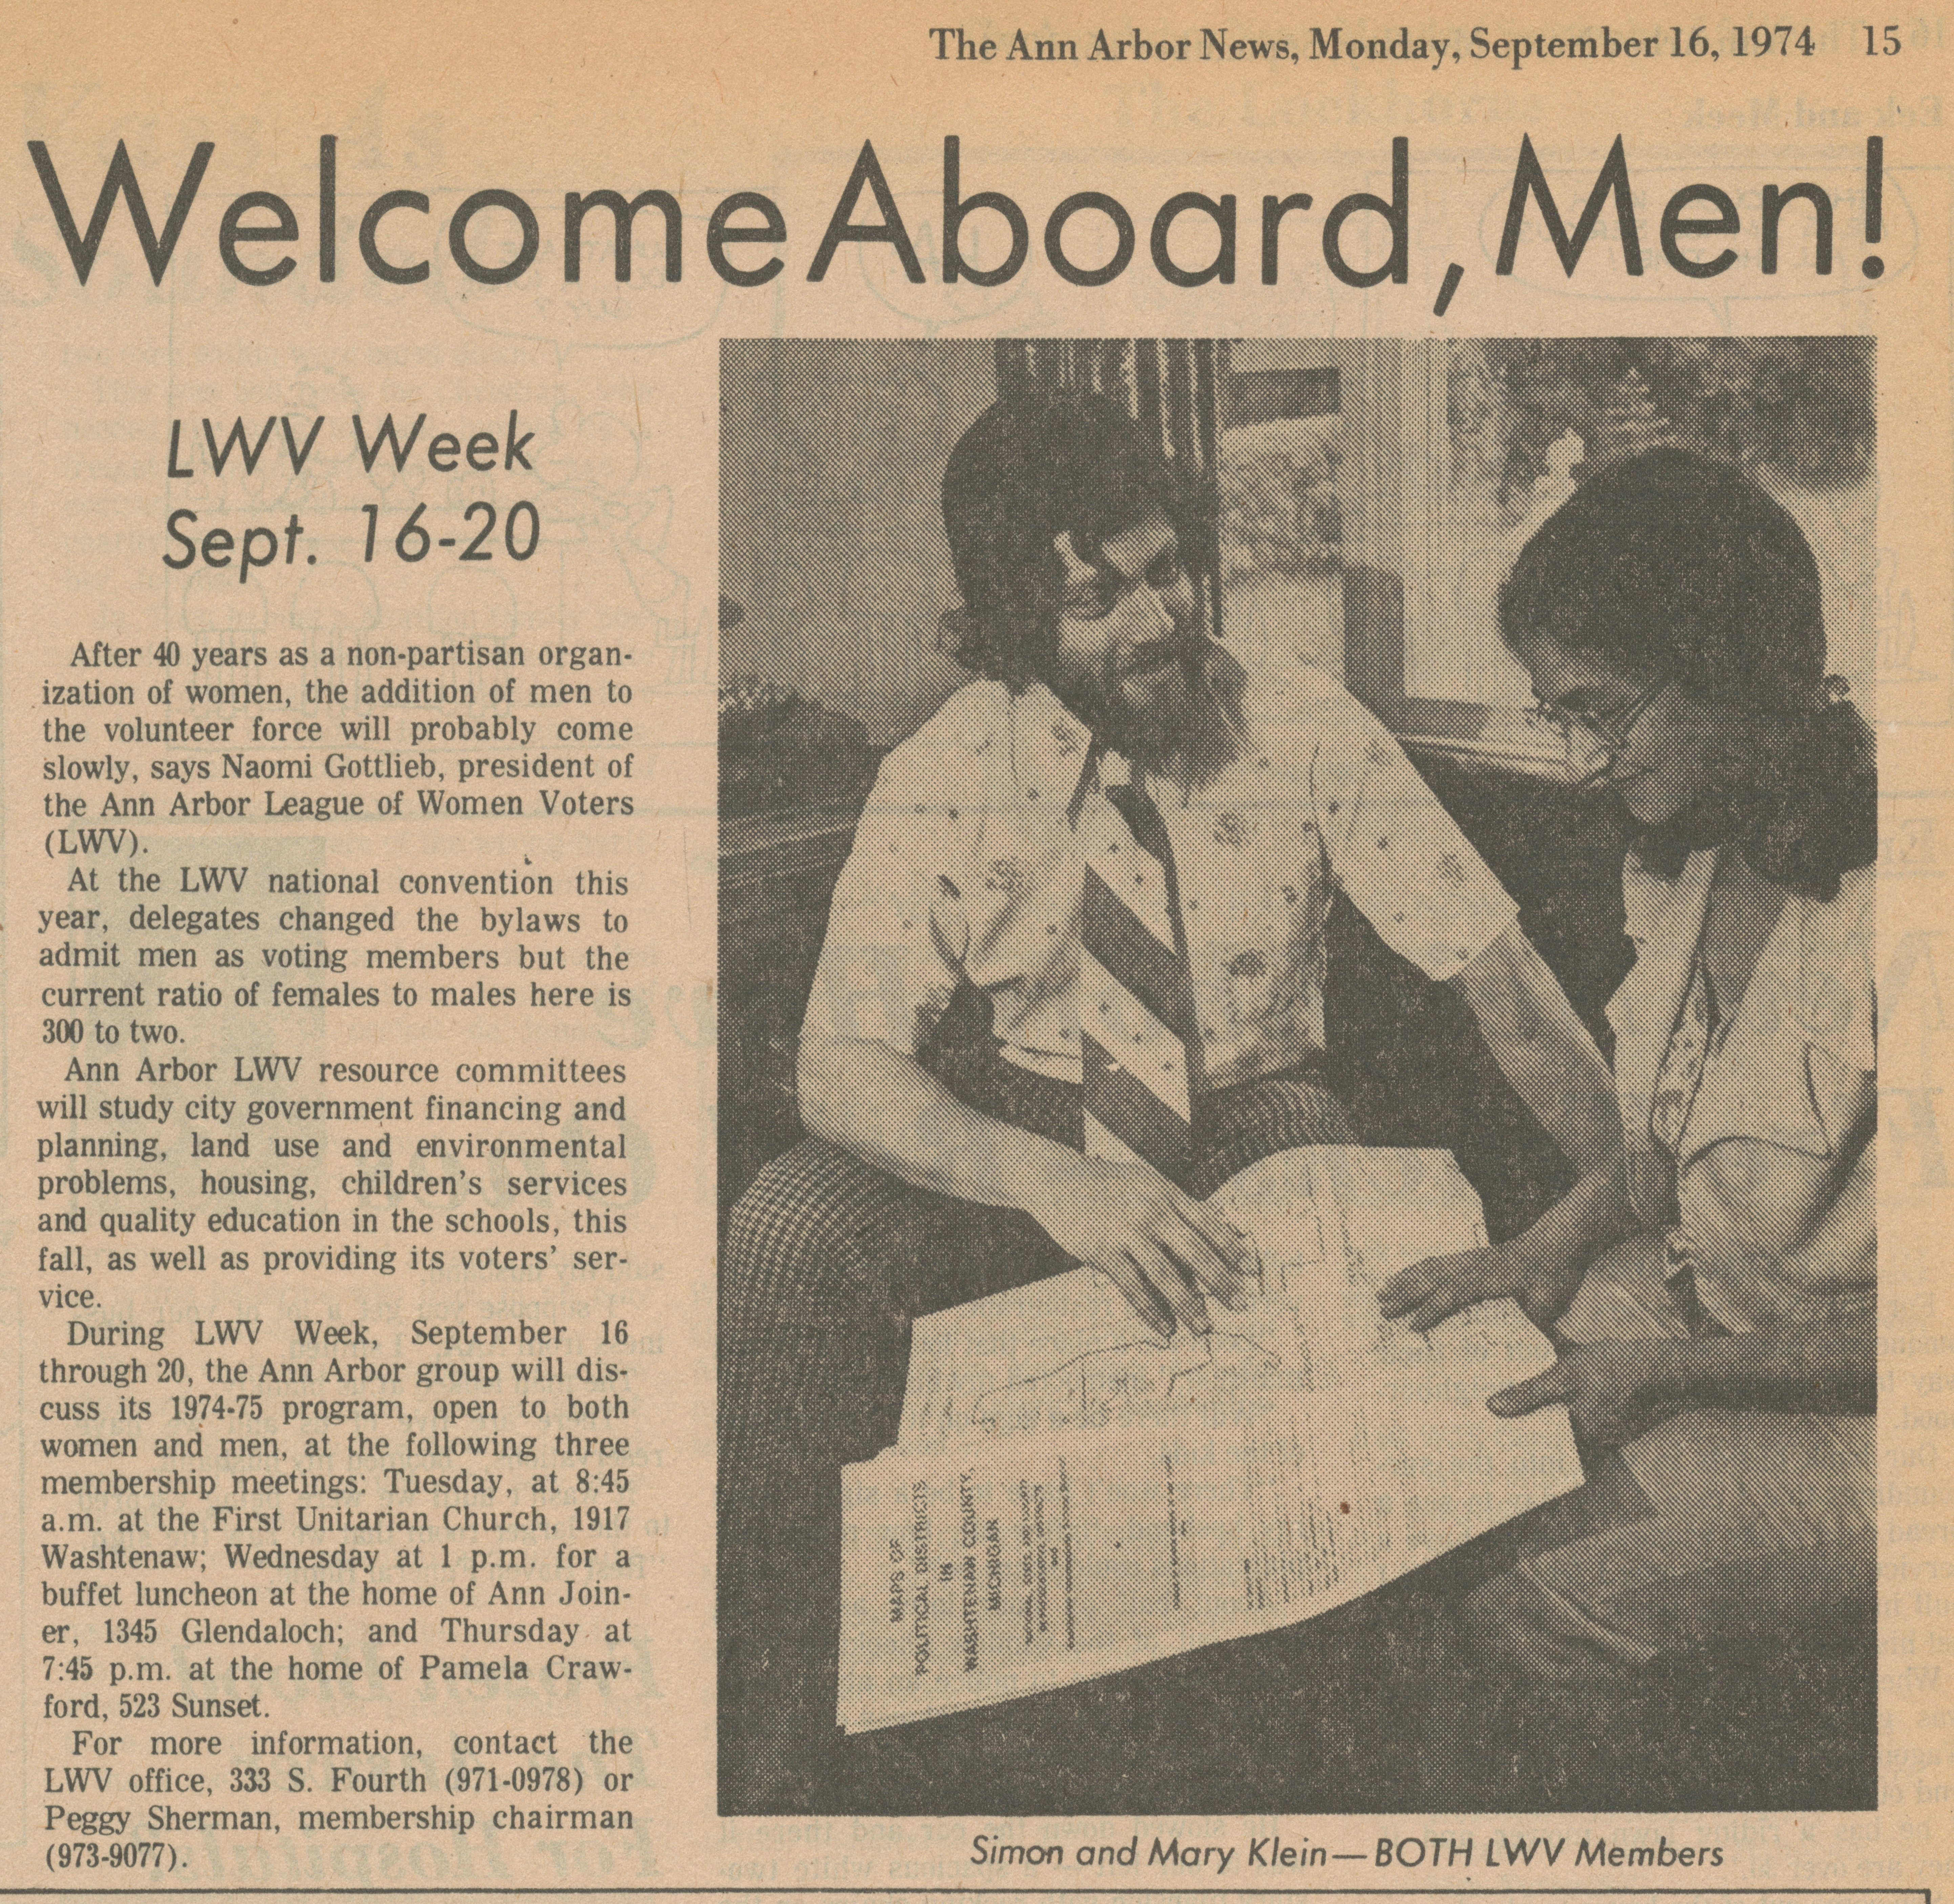 Welcome Aboard, Men! image